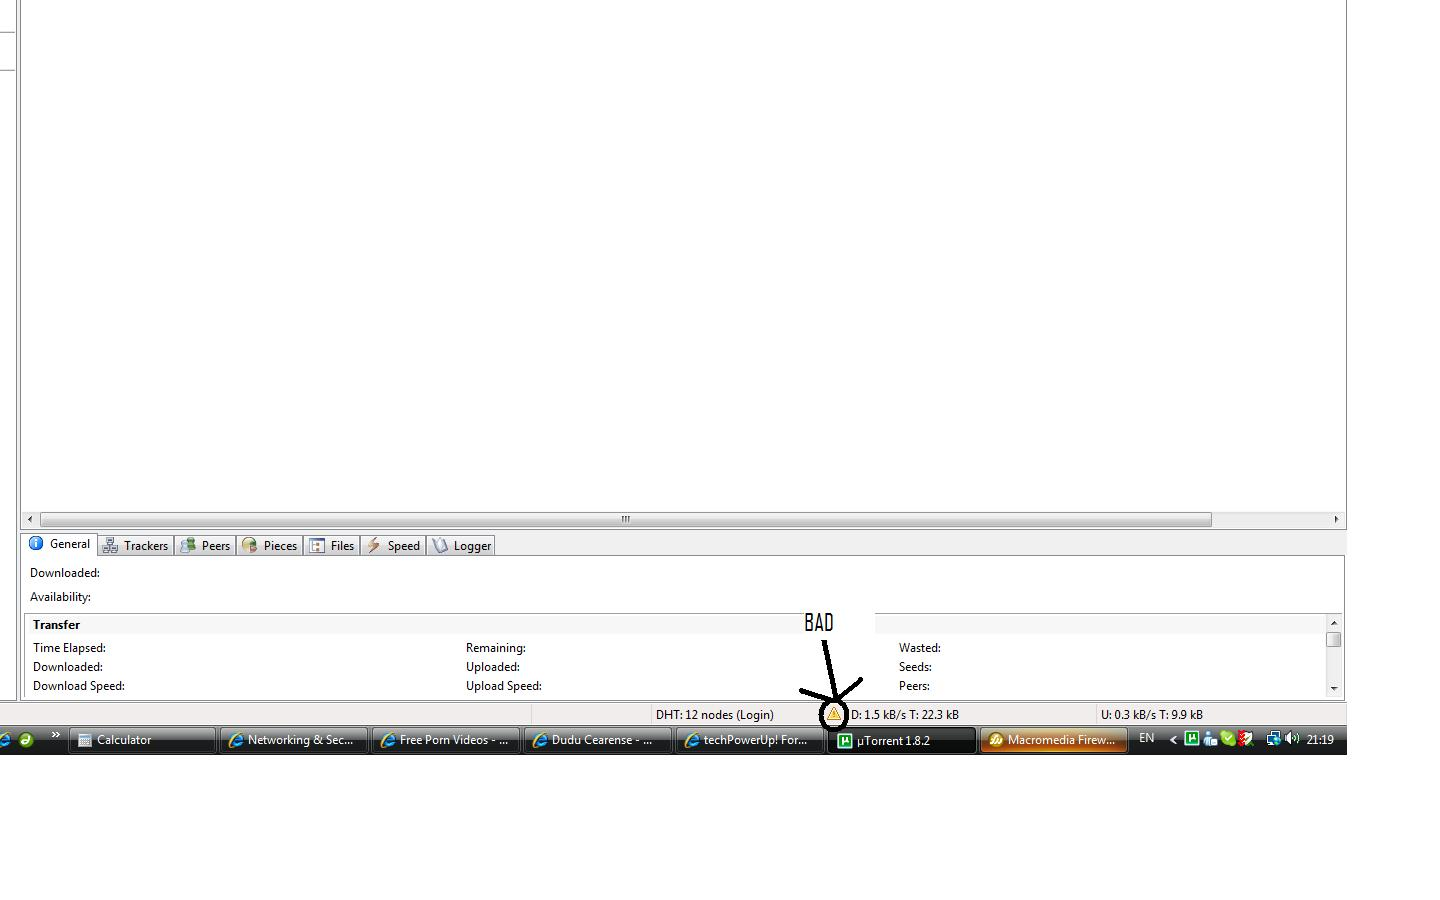 Utorrent confusing me - giving me conflicting information